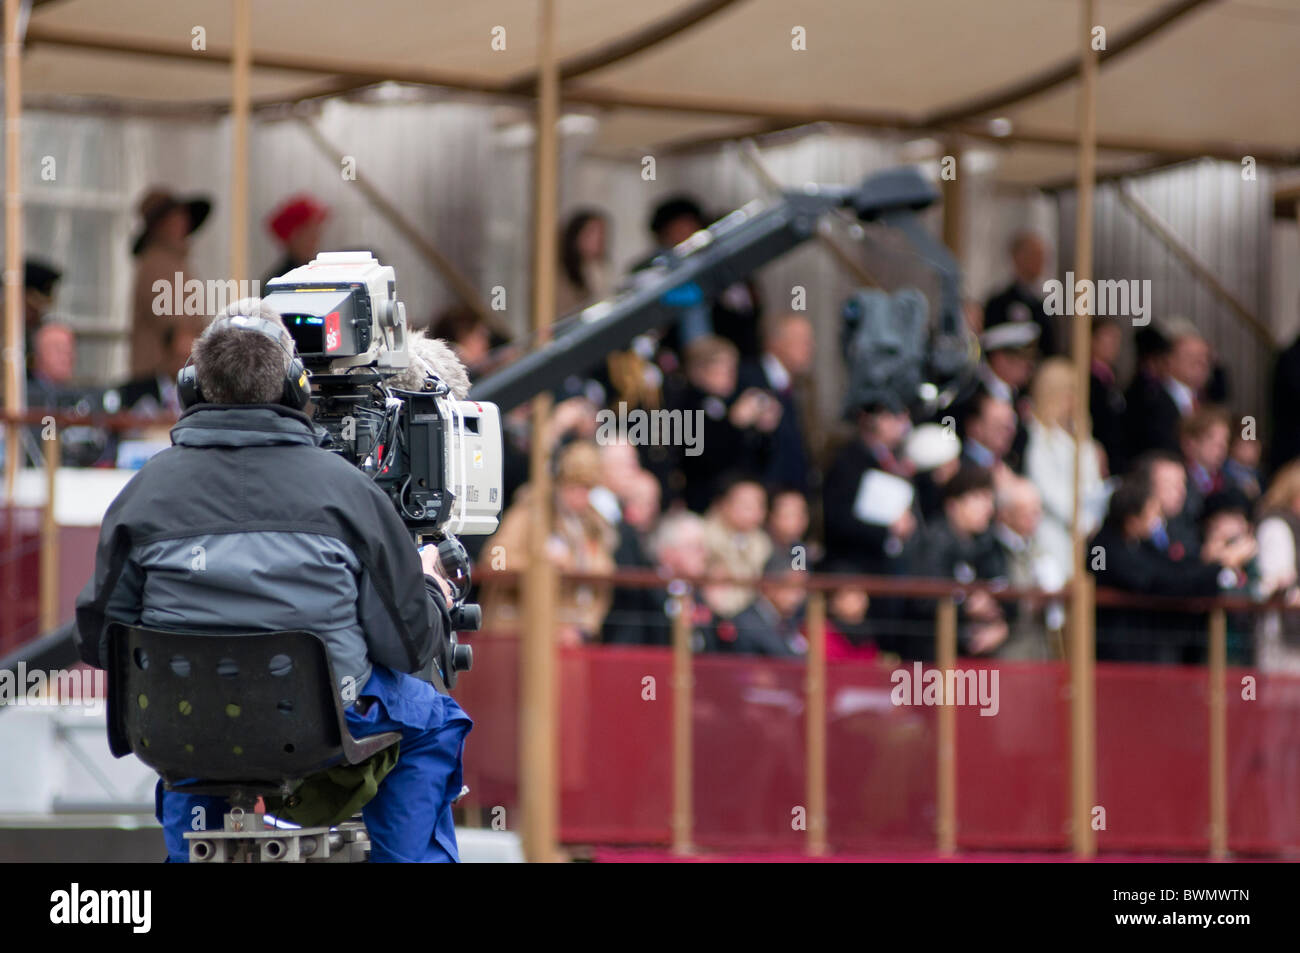 TV Cameraman covering the Lord Mayor's show 2010, London. UK Stock Photo